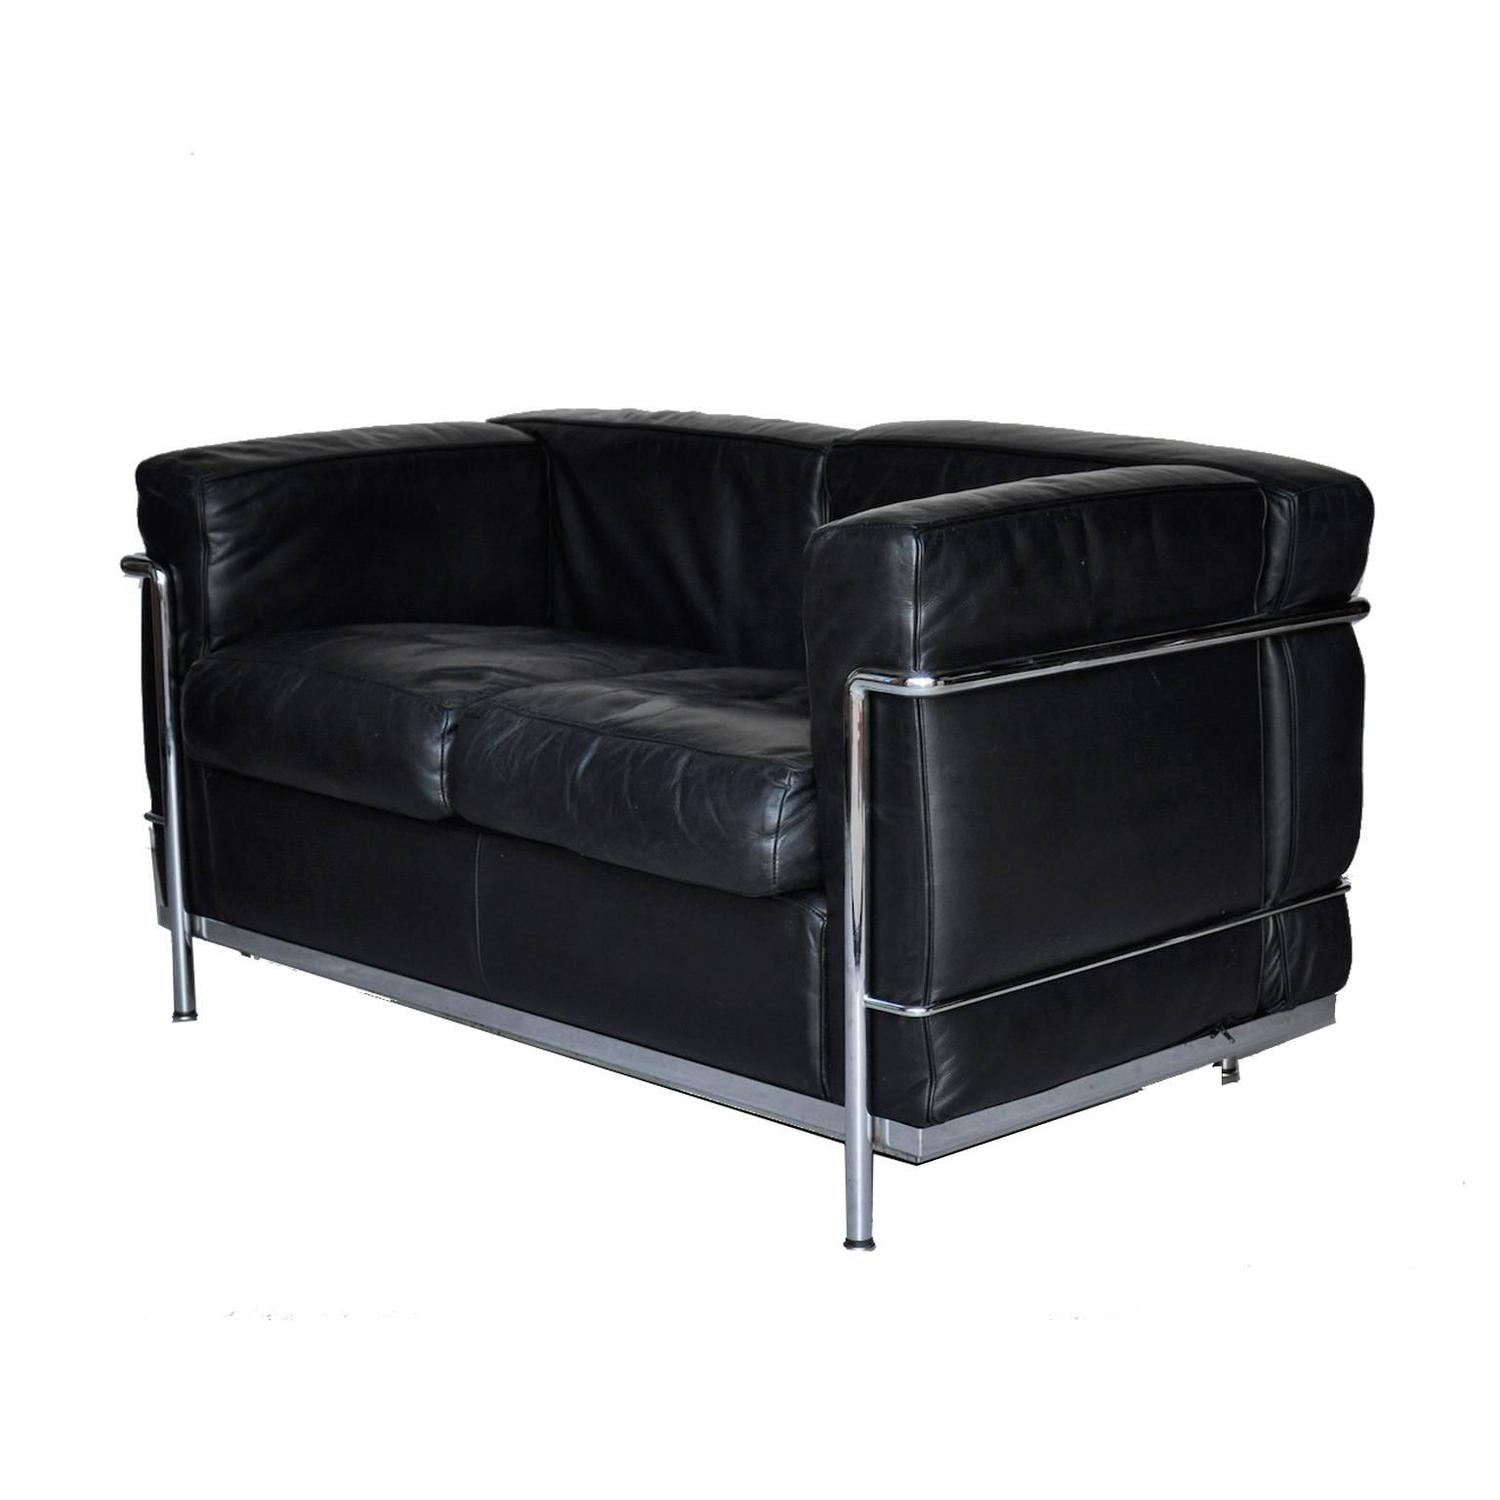 Le corbusier lc2 for cassina leather sofa at 1stdibs for Le corbusier sofa nachbau